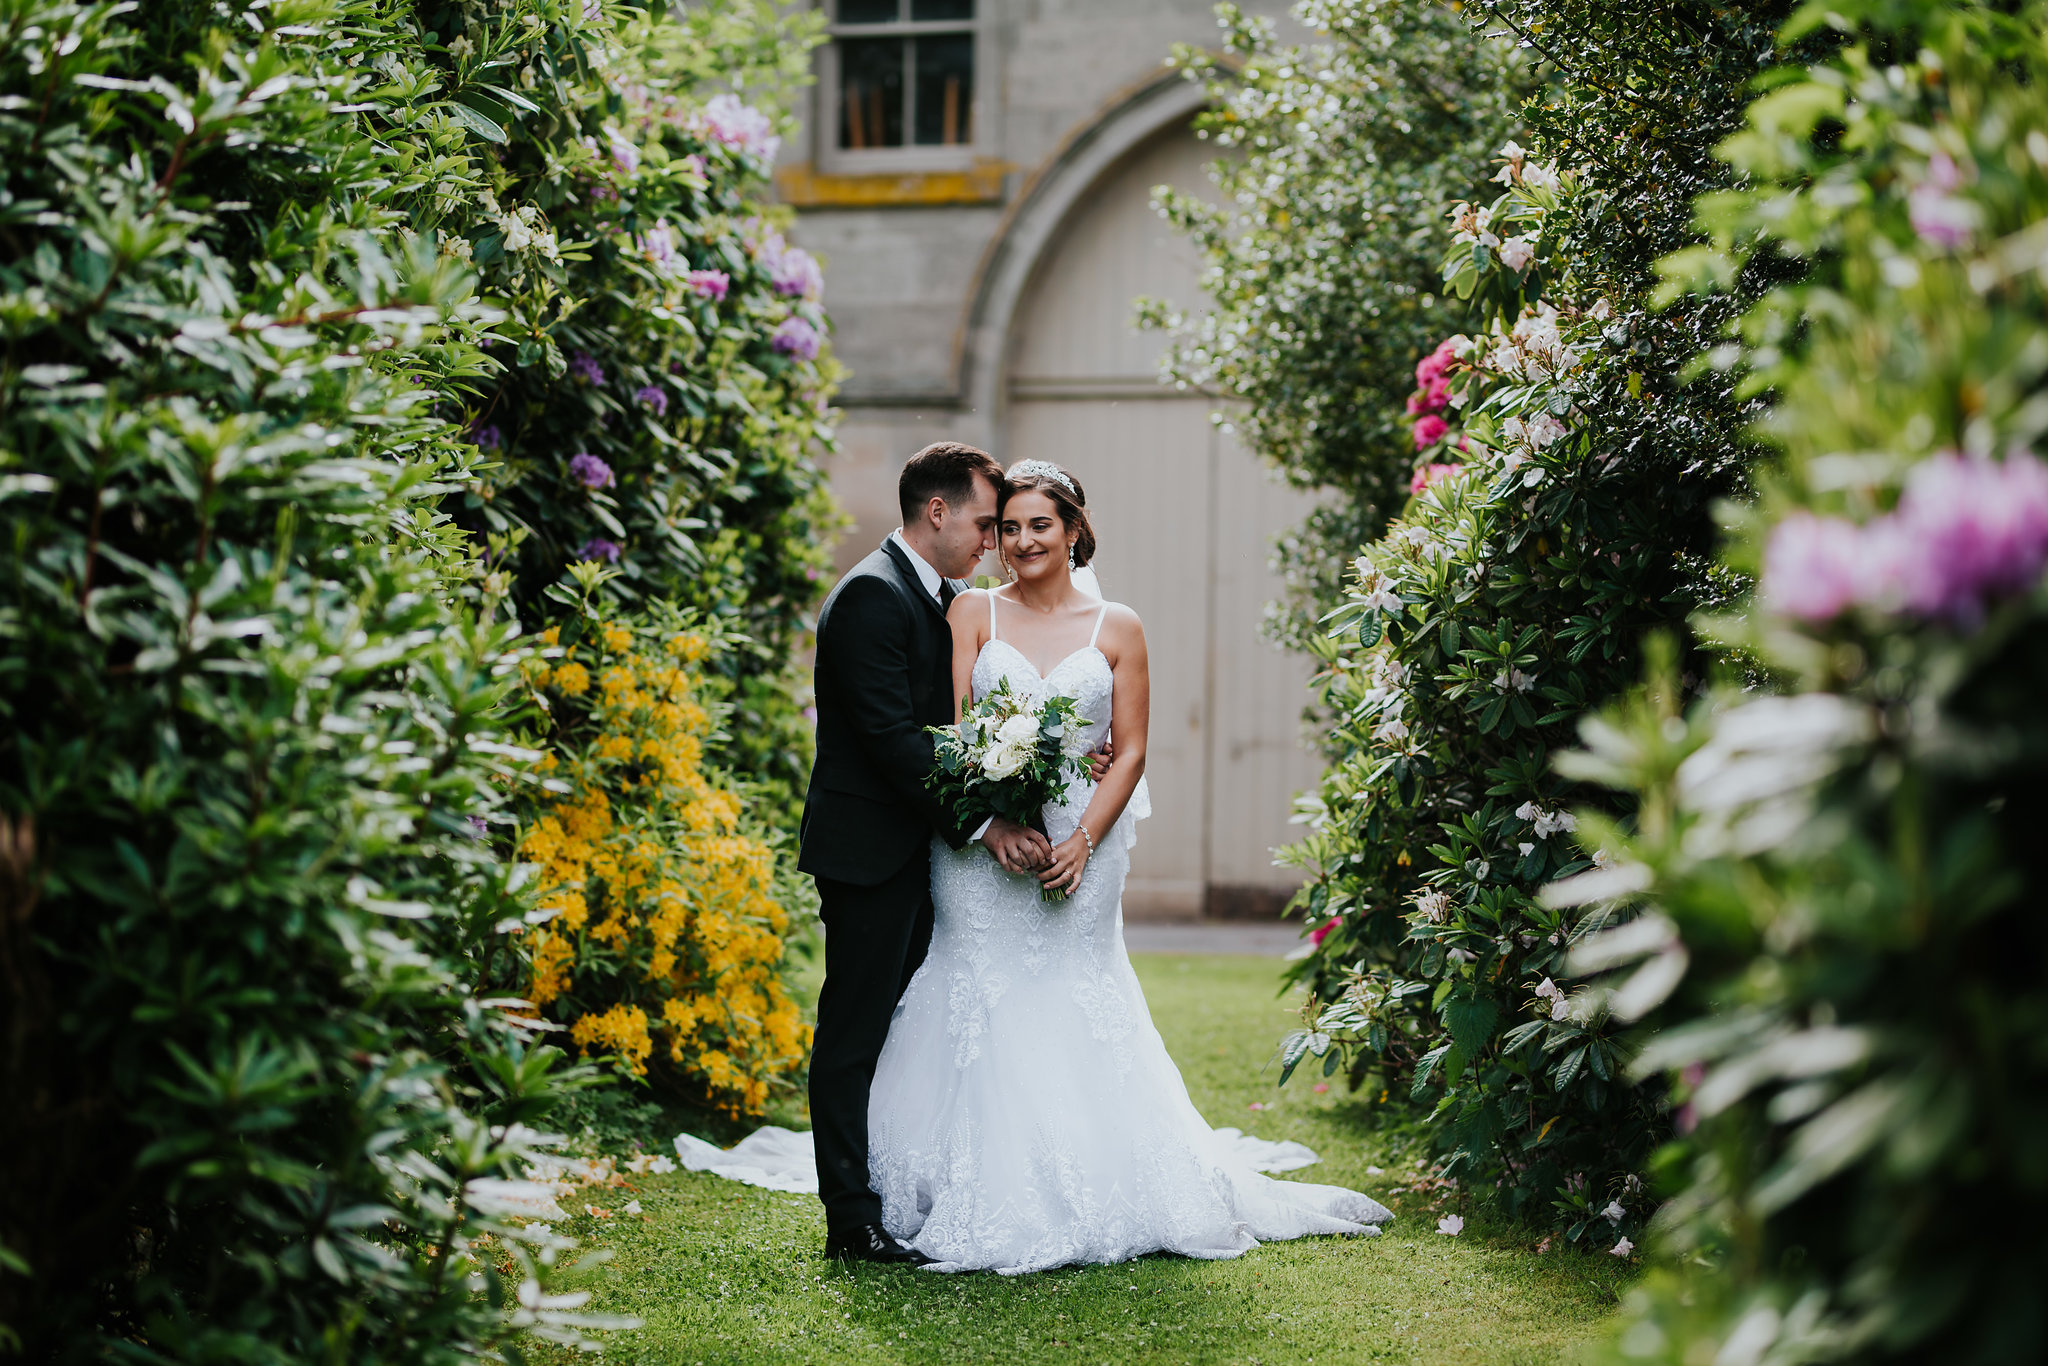 Duns_Castle_wedding_photographer_ross_alexander_photography (77).jpg